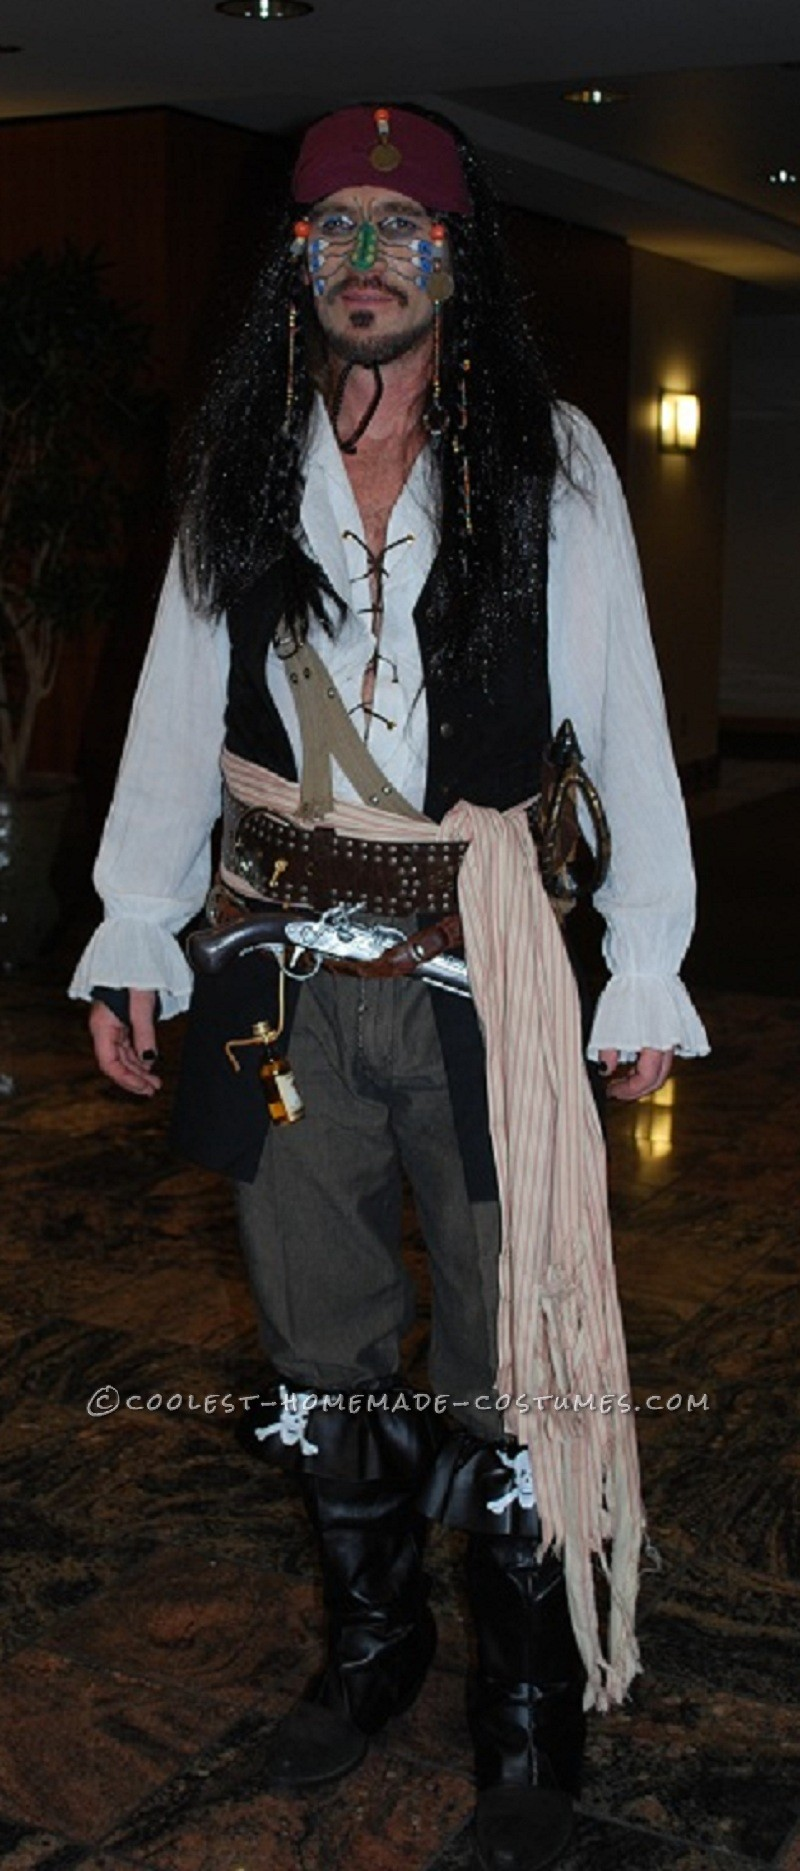 Coolest Captain Jack Sparrow Homemade Halloween Costume